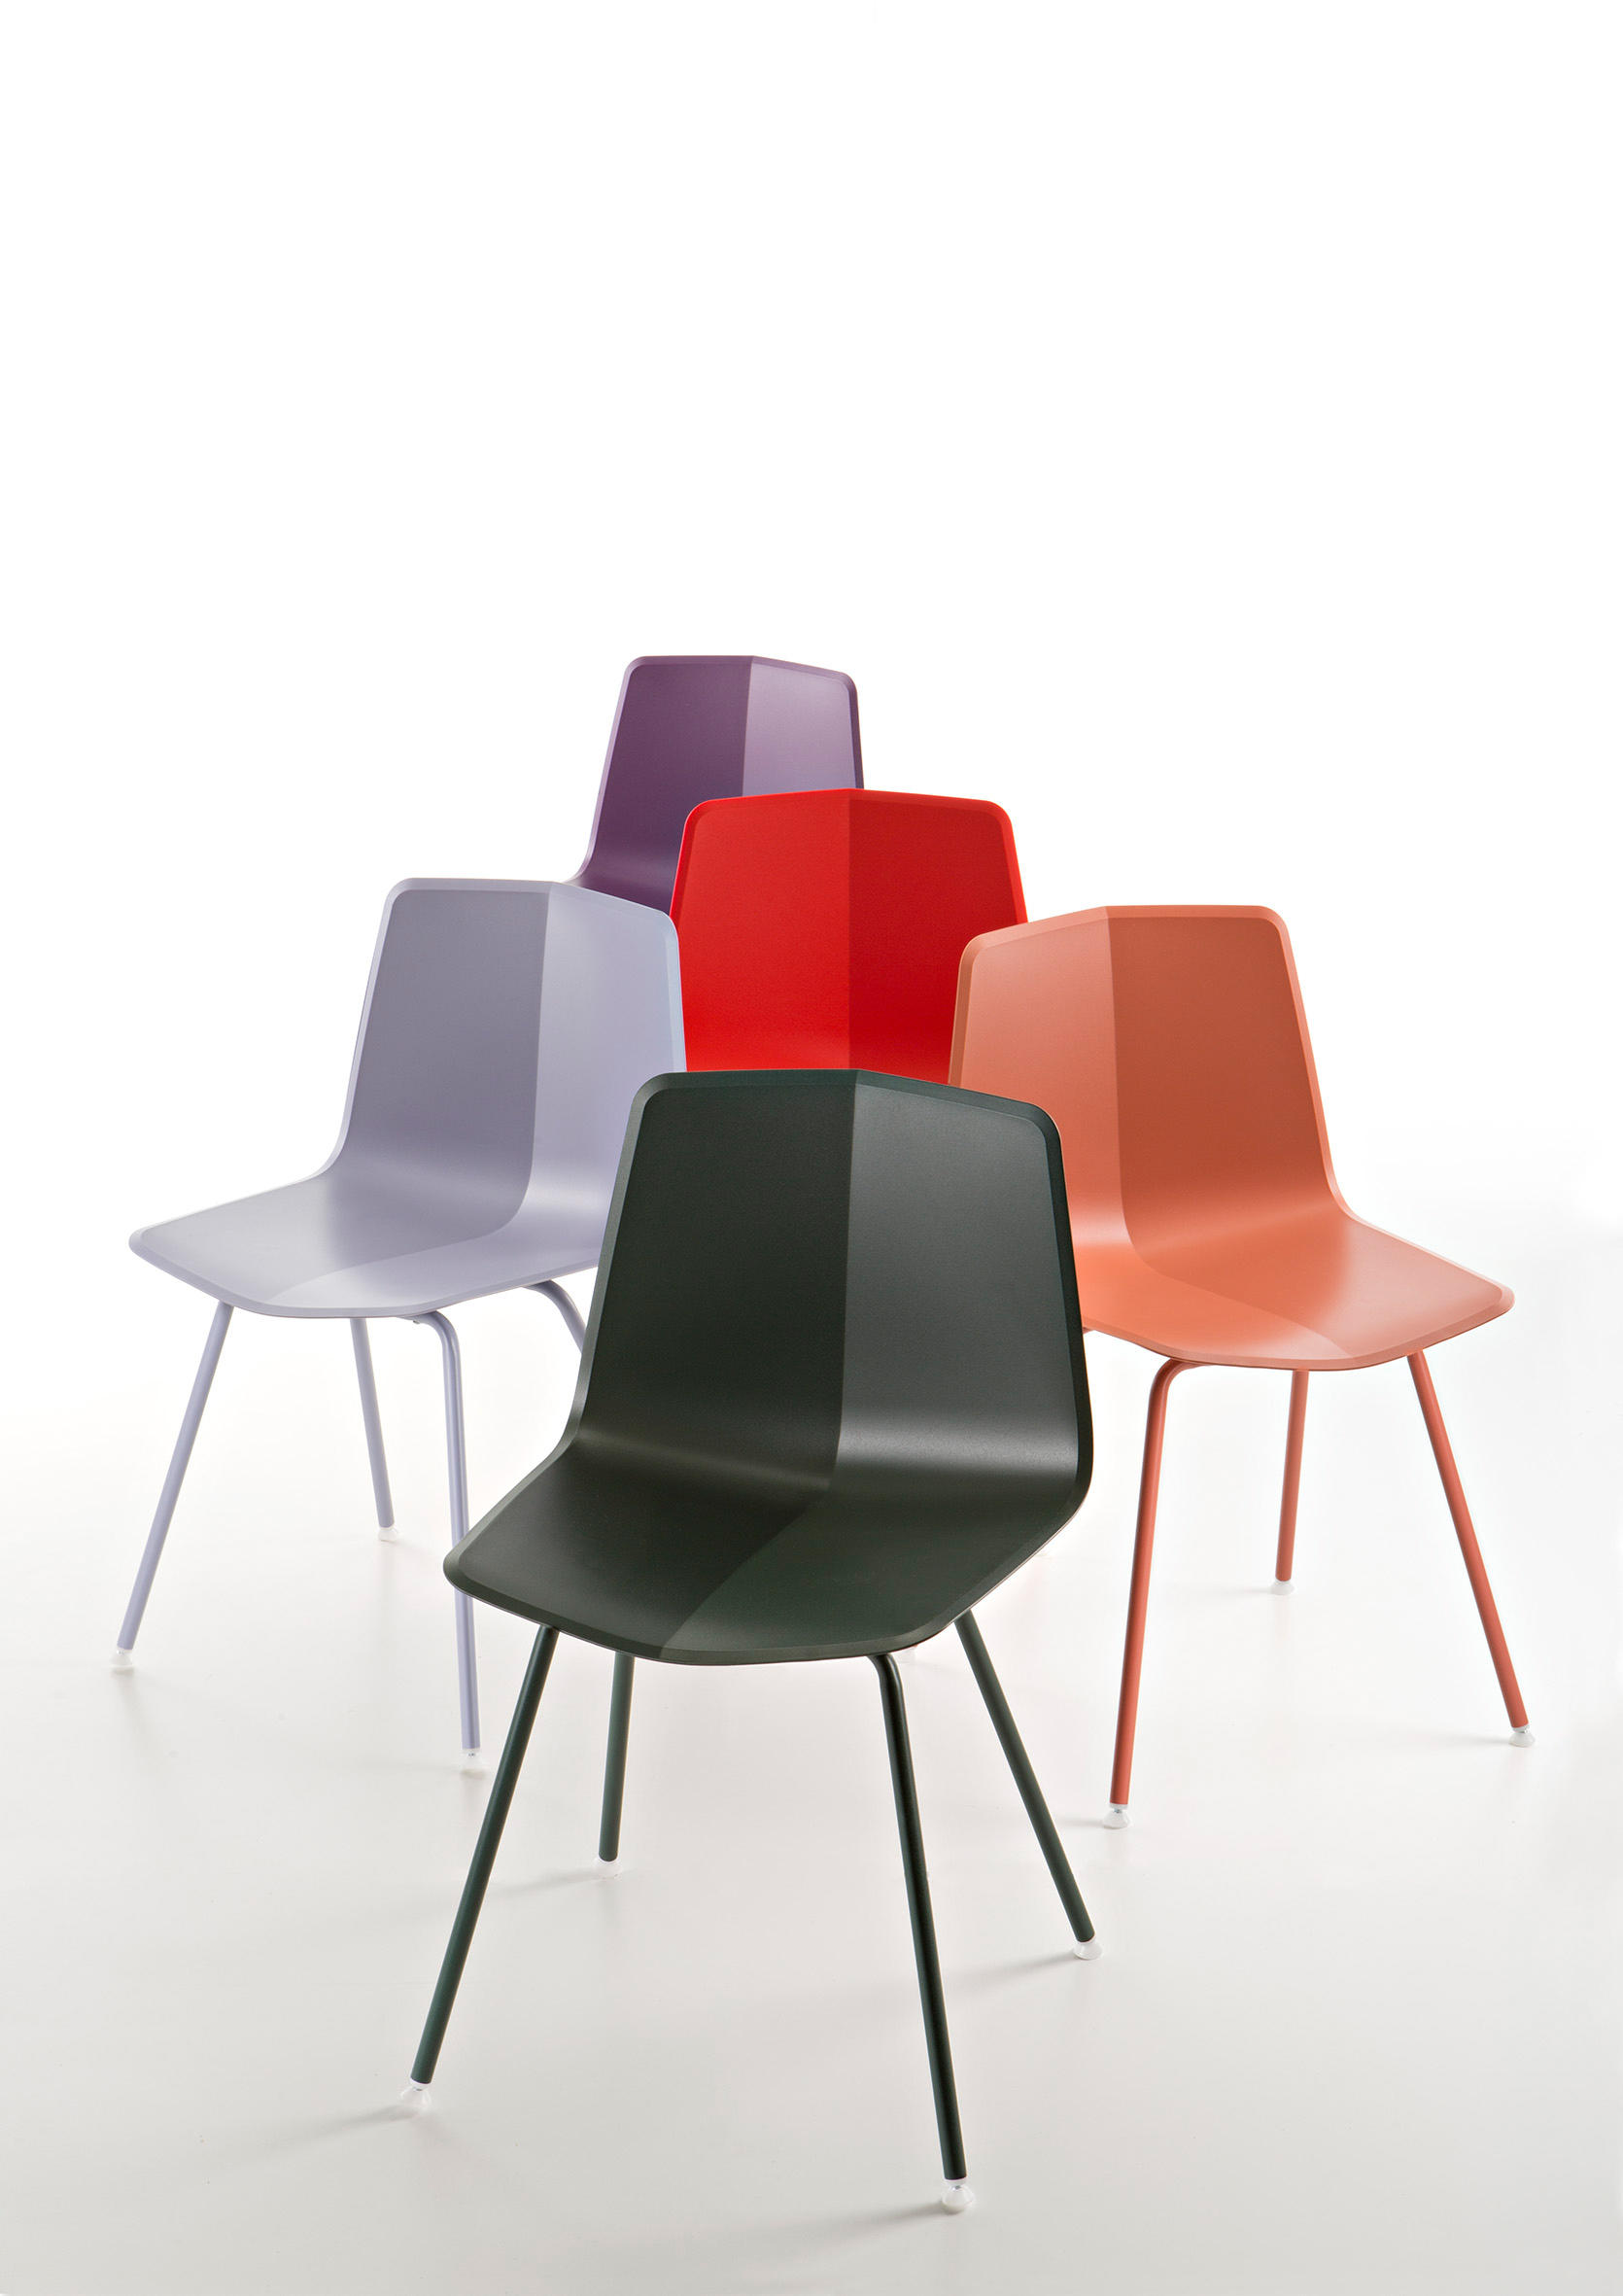 STRATOS - Restaurant chairs from Maxdesign | Architonic